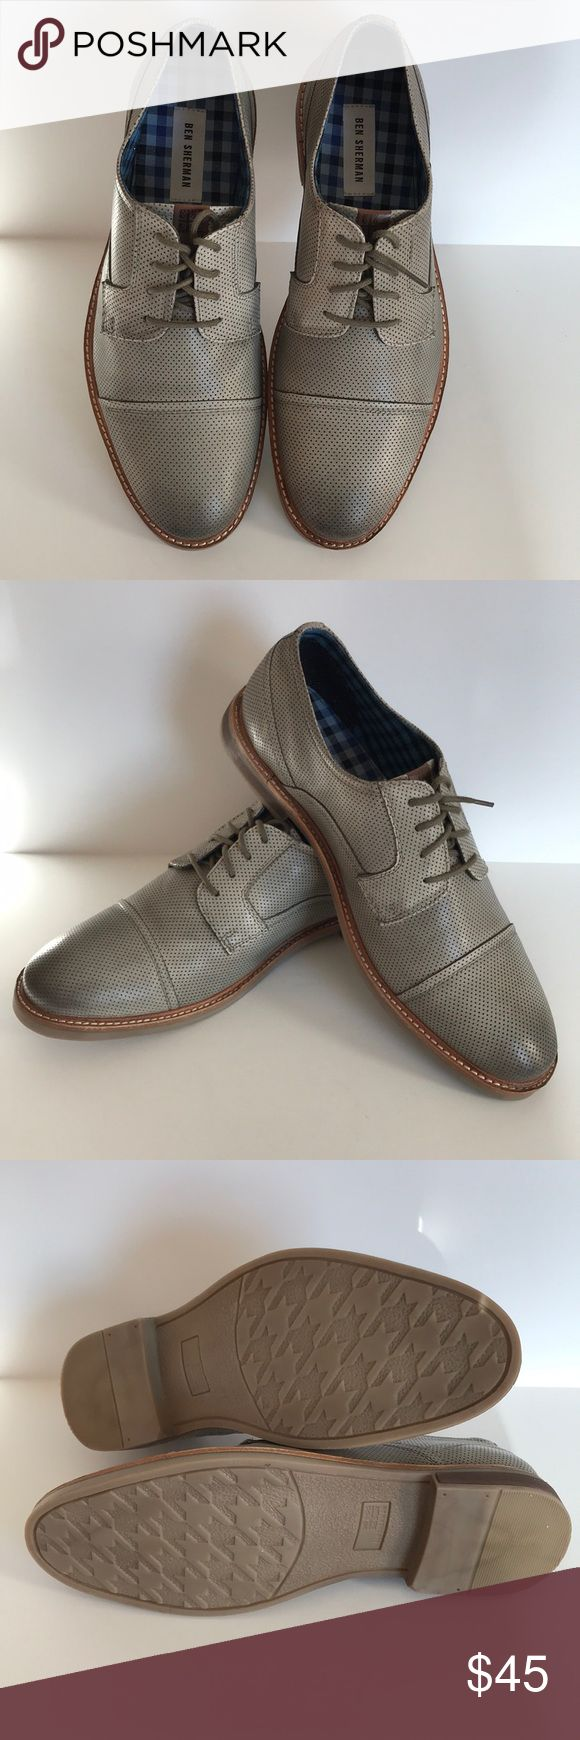 Ben Sherman dress lace ups Ben Sherman dress lace ups. Width medium, size 9.5. Color Luke Grey. Worn once still in original box. Ben Sherman Shoes Oxfords & Derbys